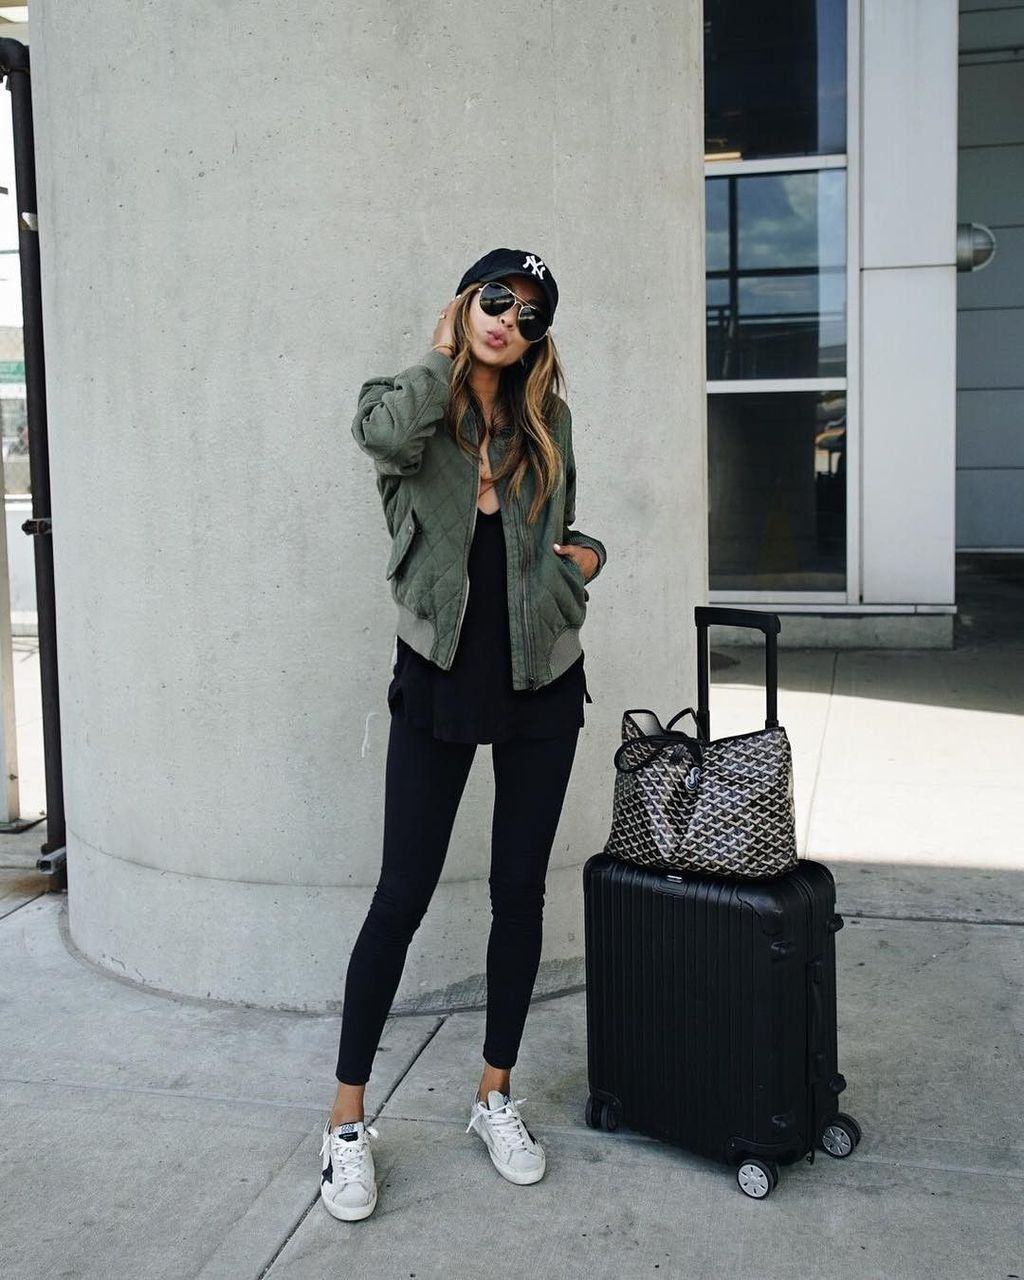 c9756836edd5 Bomber Jacket - The ultimate cool-girl airport outfit  Sincerely Jules   olive green bomber jacket and black legging combo.